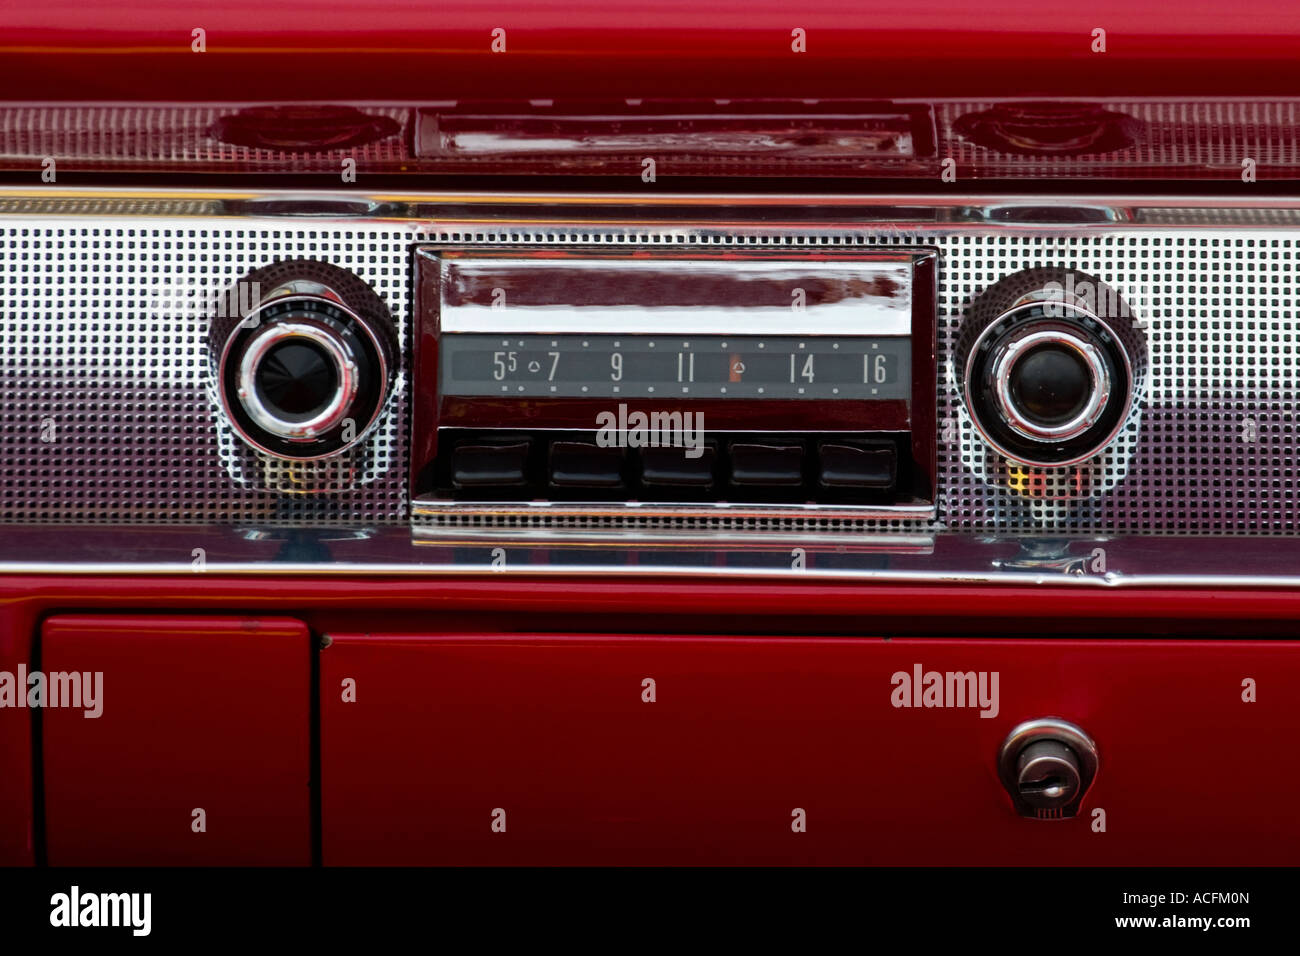 Old car audio in a american car - Stock Image